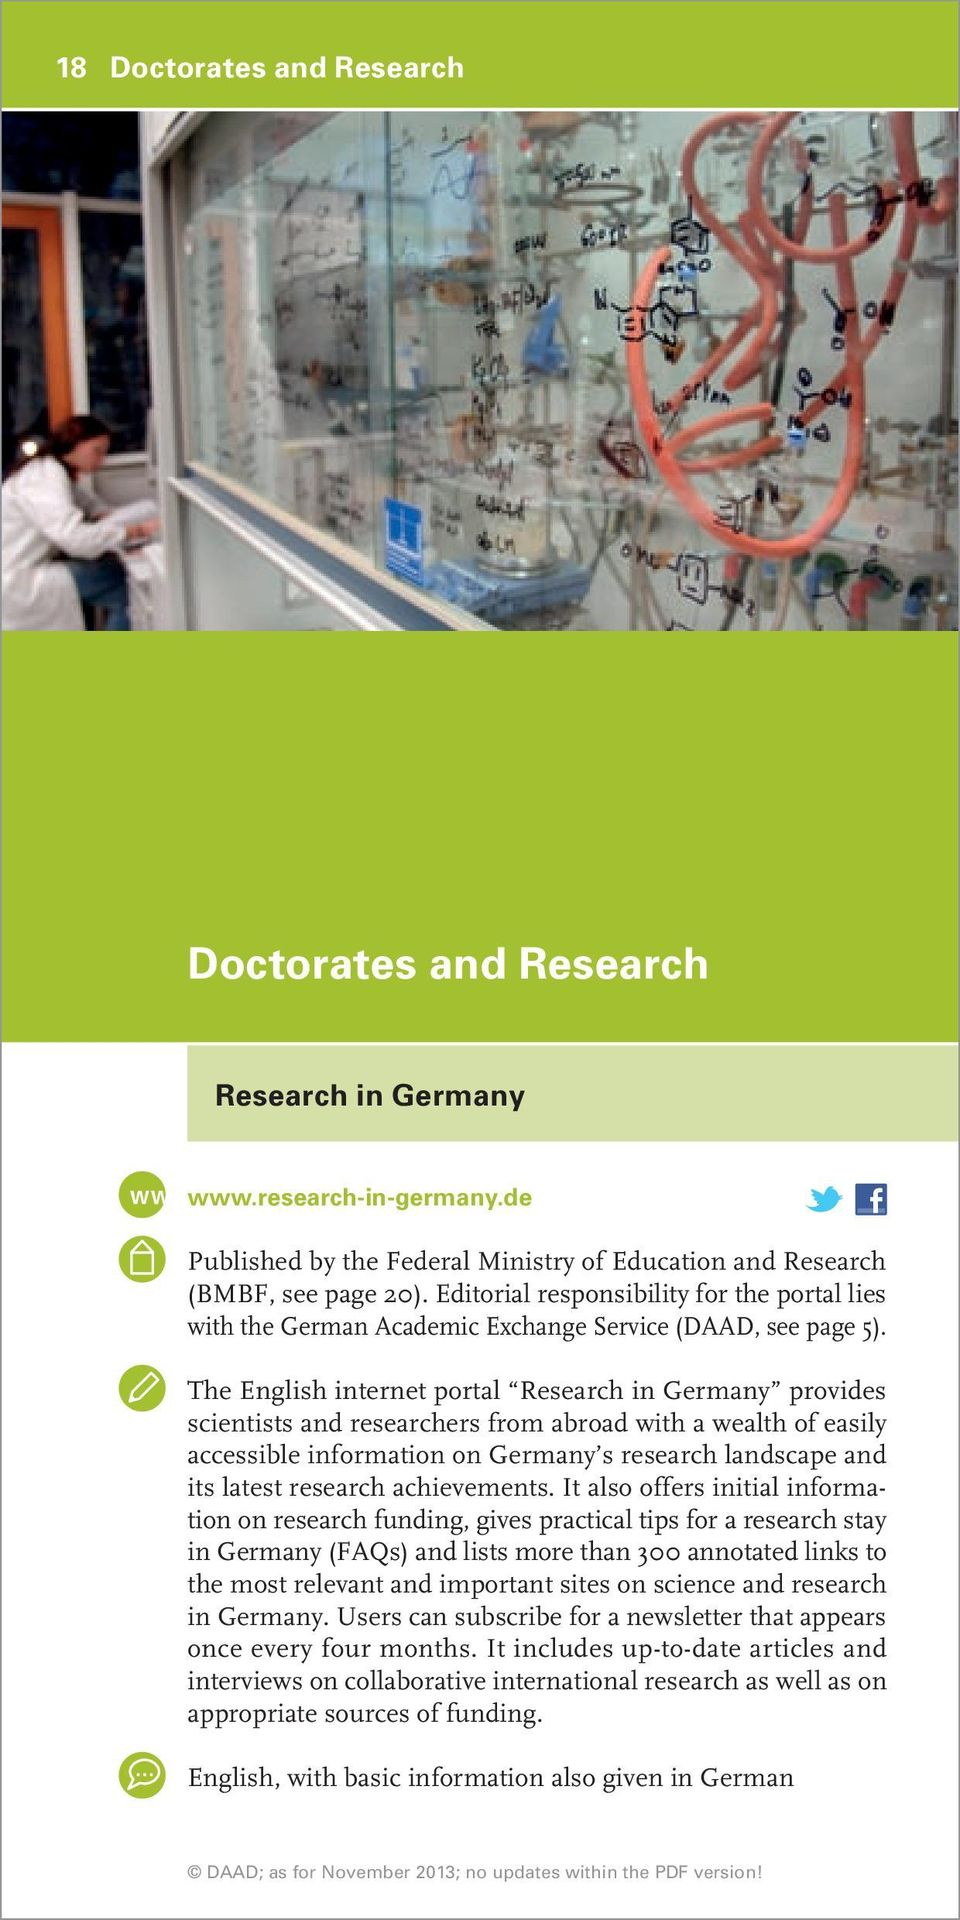 The English internet portal Research in Germany provides scientists and researchers from abroad with a wealth of easily accessible information on Germany s research landscape and its latest research